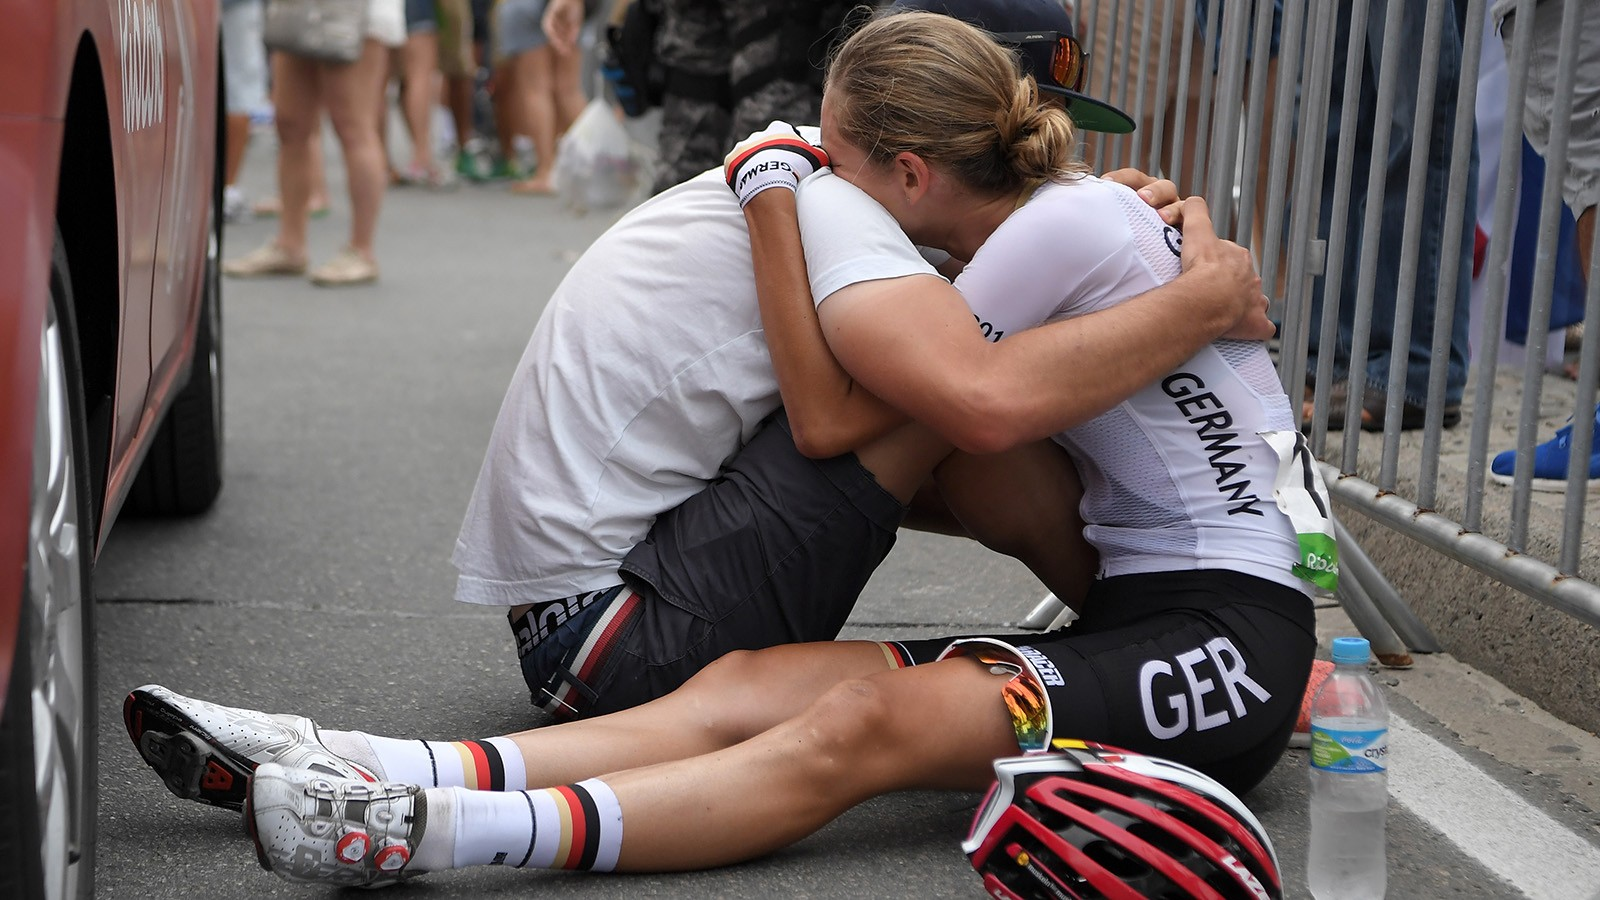 Claudia Lichtenberg after finishing the Women's Road Race at the Rio 2016 Olympic Games